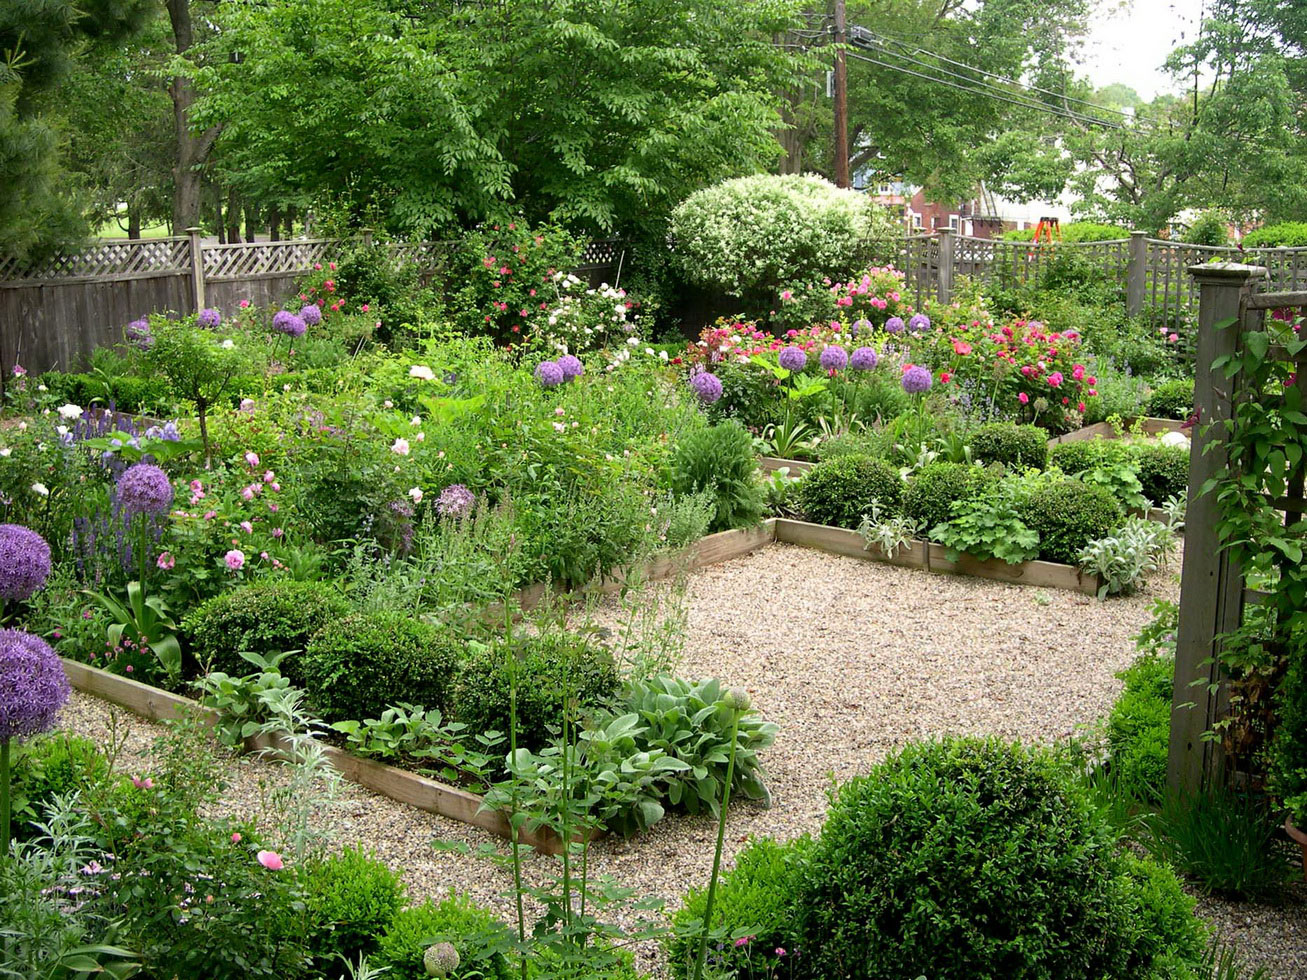 Garden design ideas, London garden landscaping & planting gardens